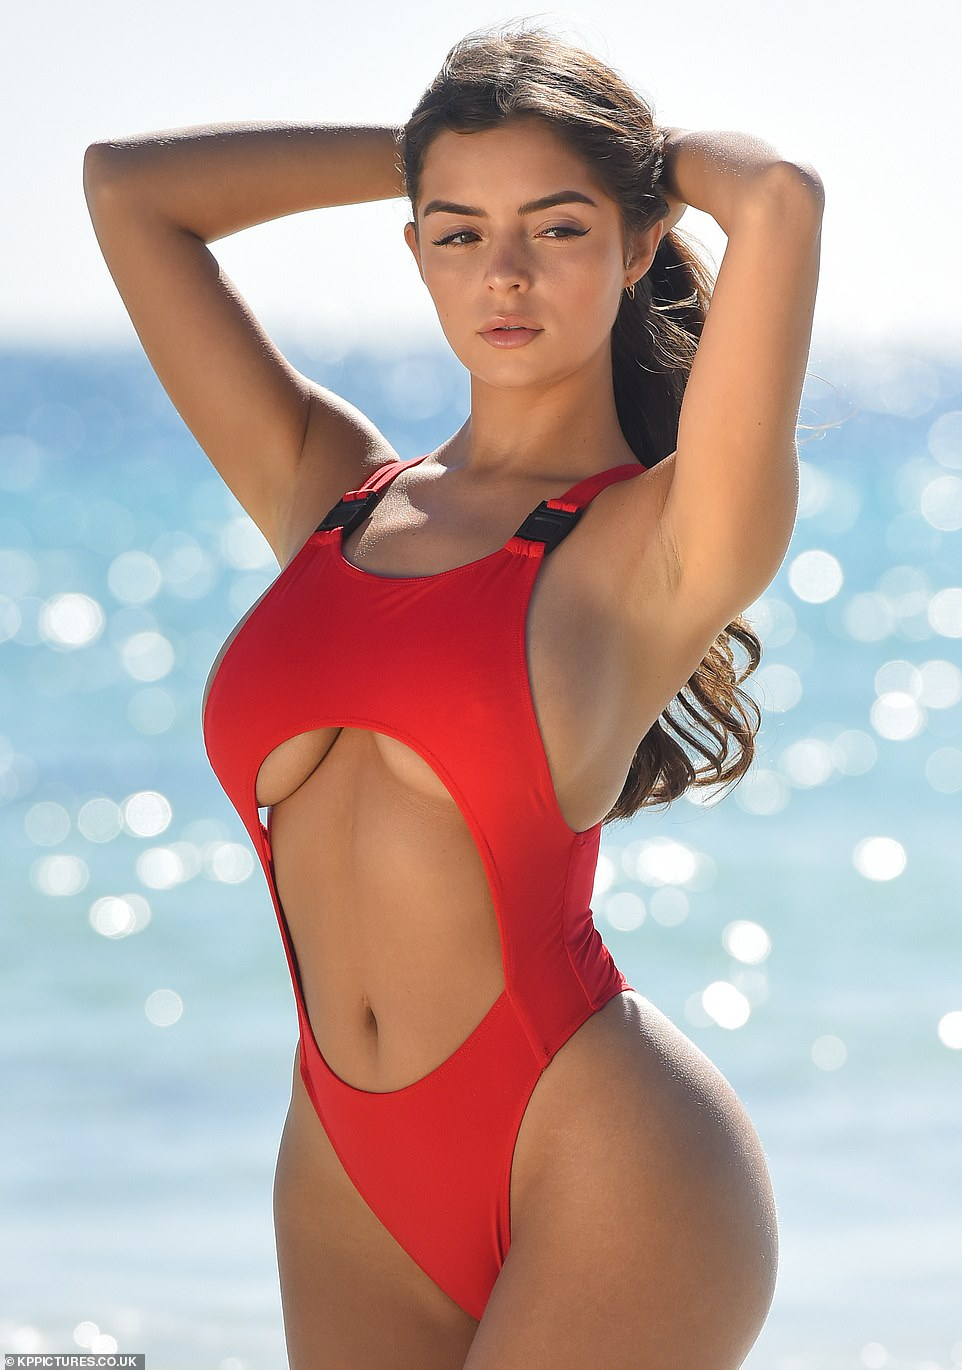 Voluptuous model displays her underboob in a very revealing red swimsuit